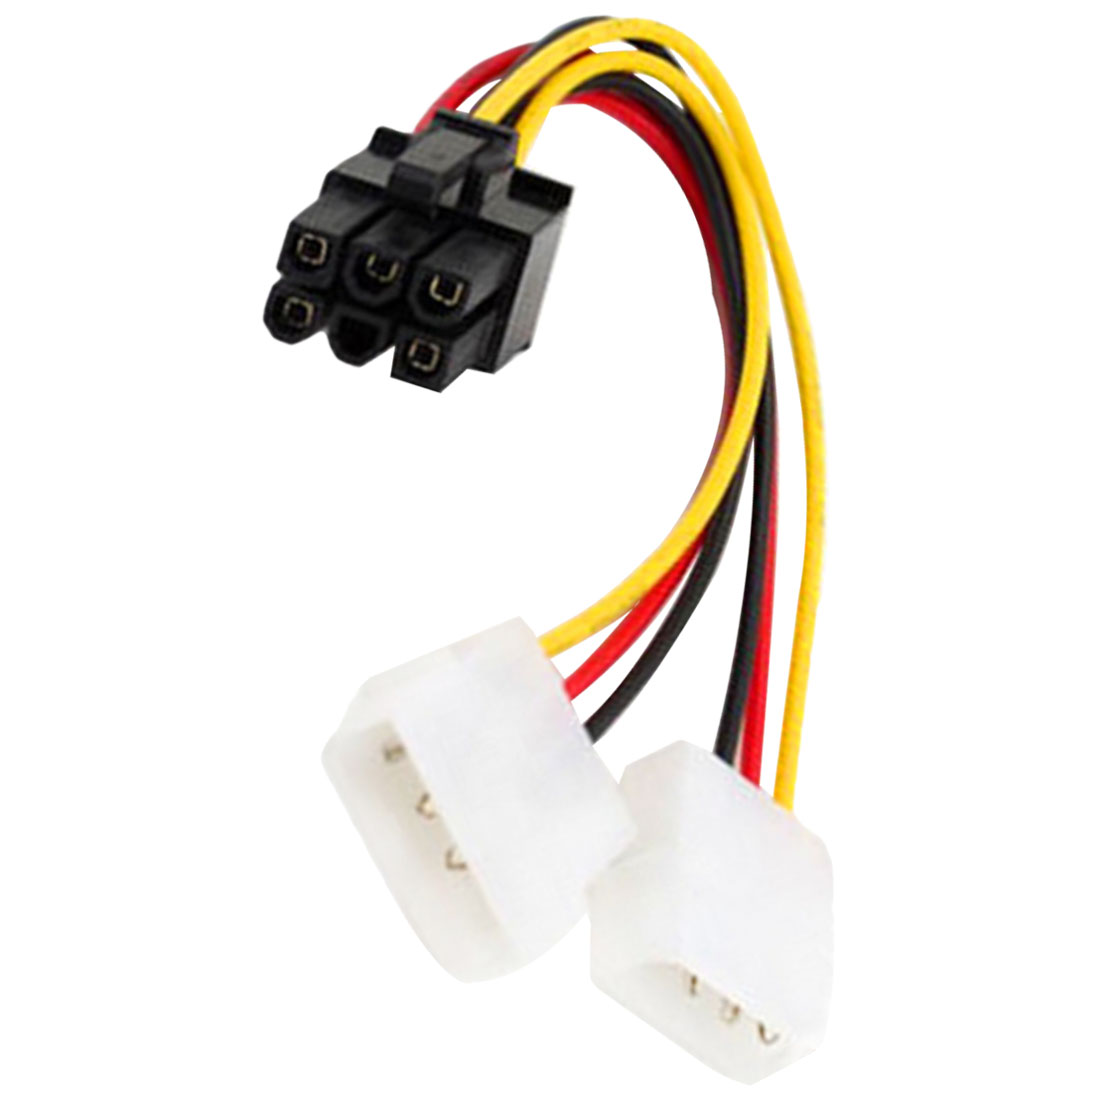 New Arrival Graphics Card Power Cable Dual 4PIN To 6PIN 6P To 4P Adapter Cable Computer Graphics Card Power Cable